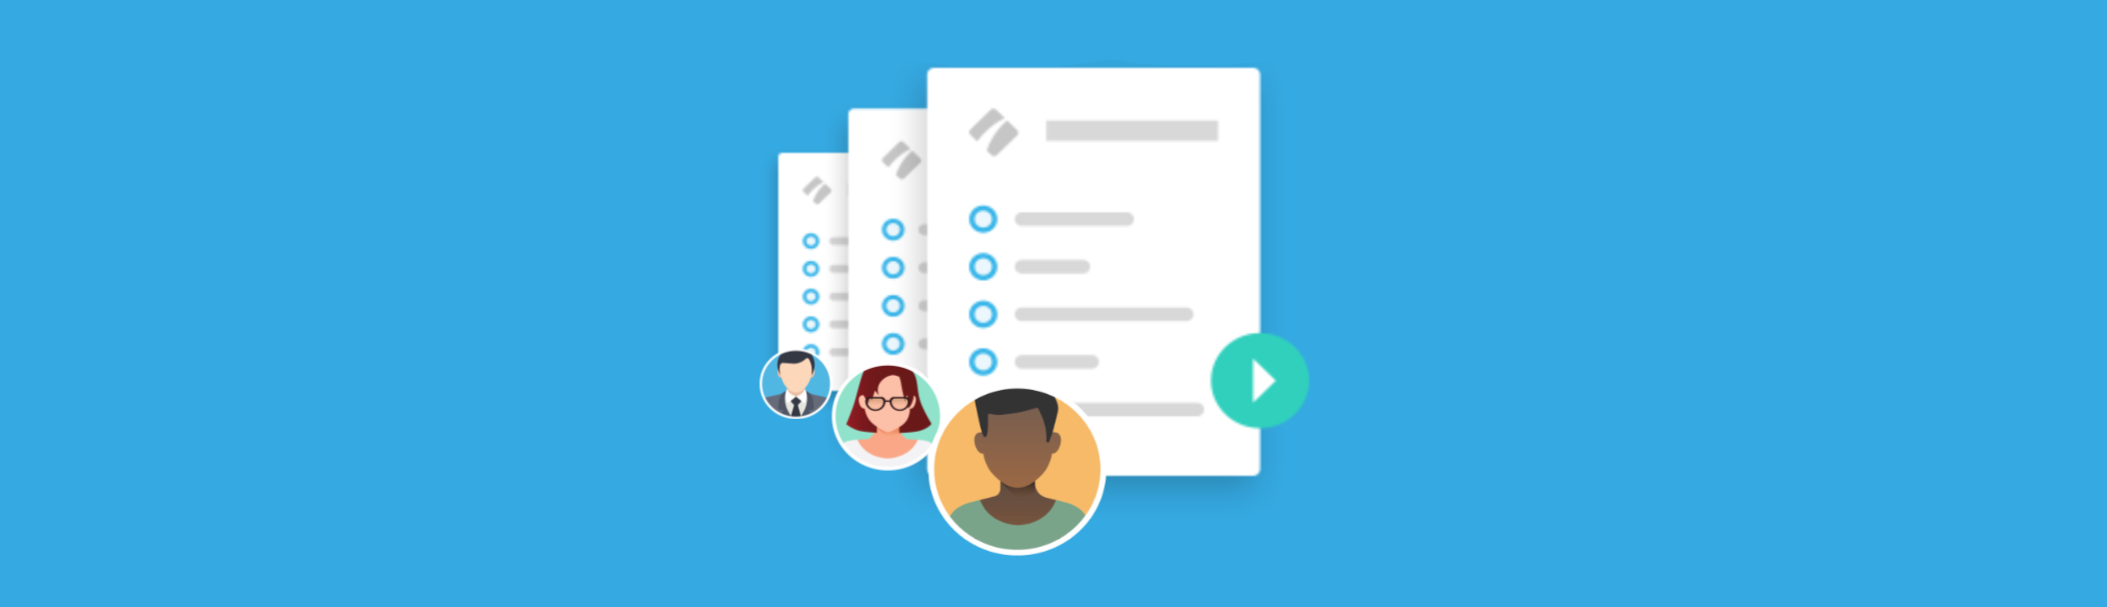 Collaboration is Easy with Dashboards and Handoffs